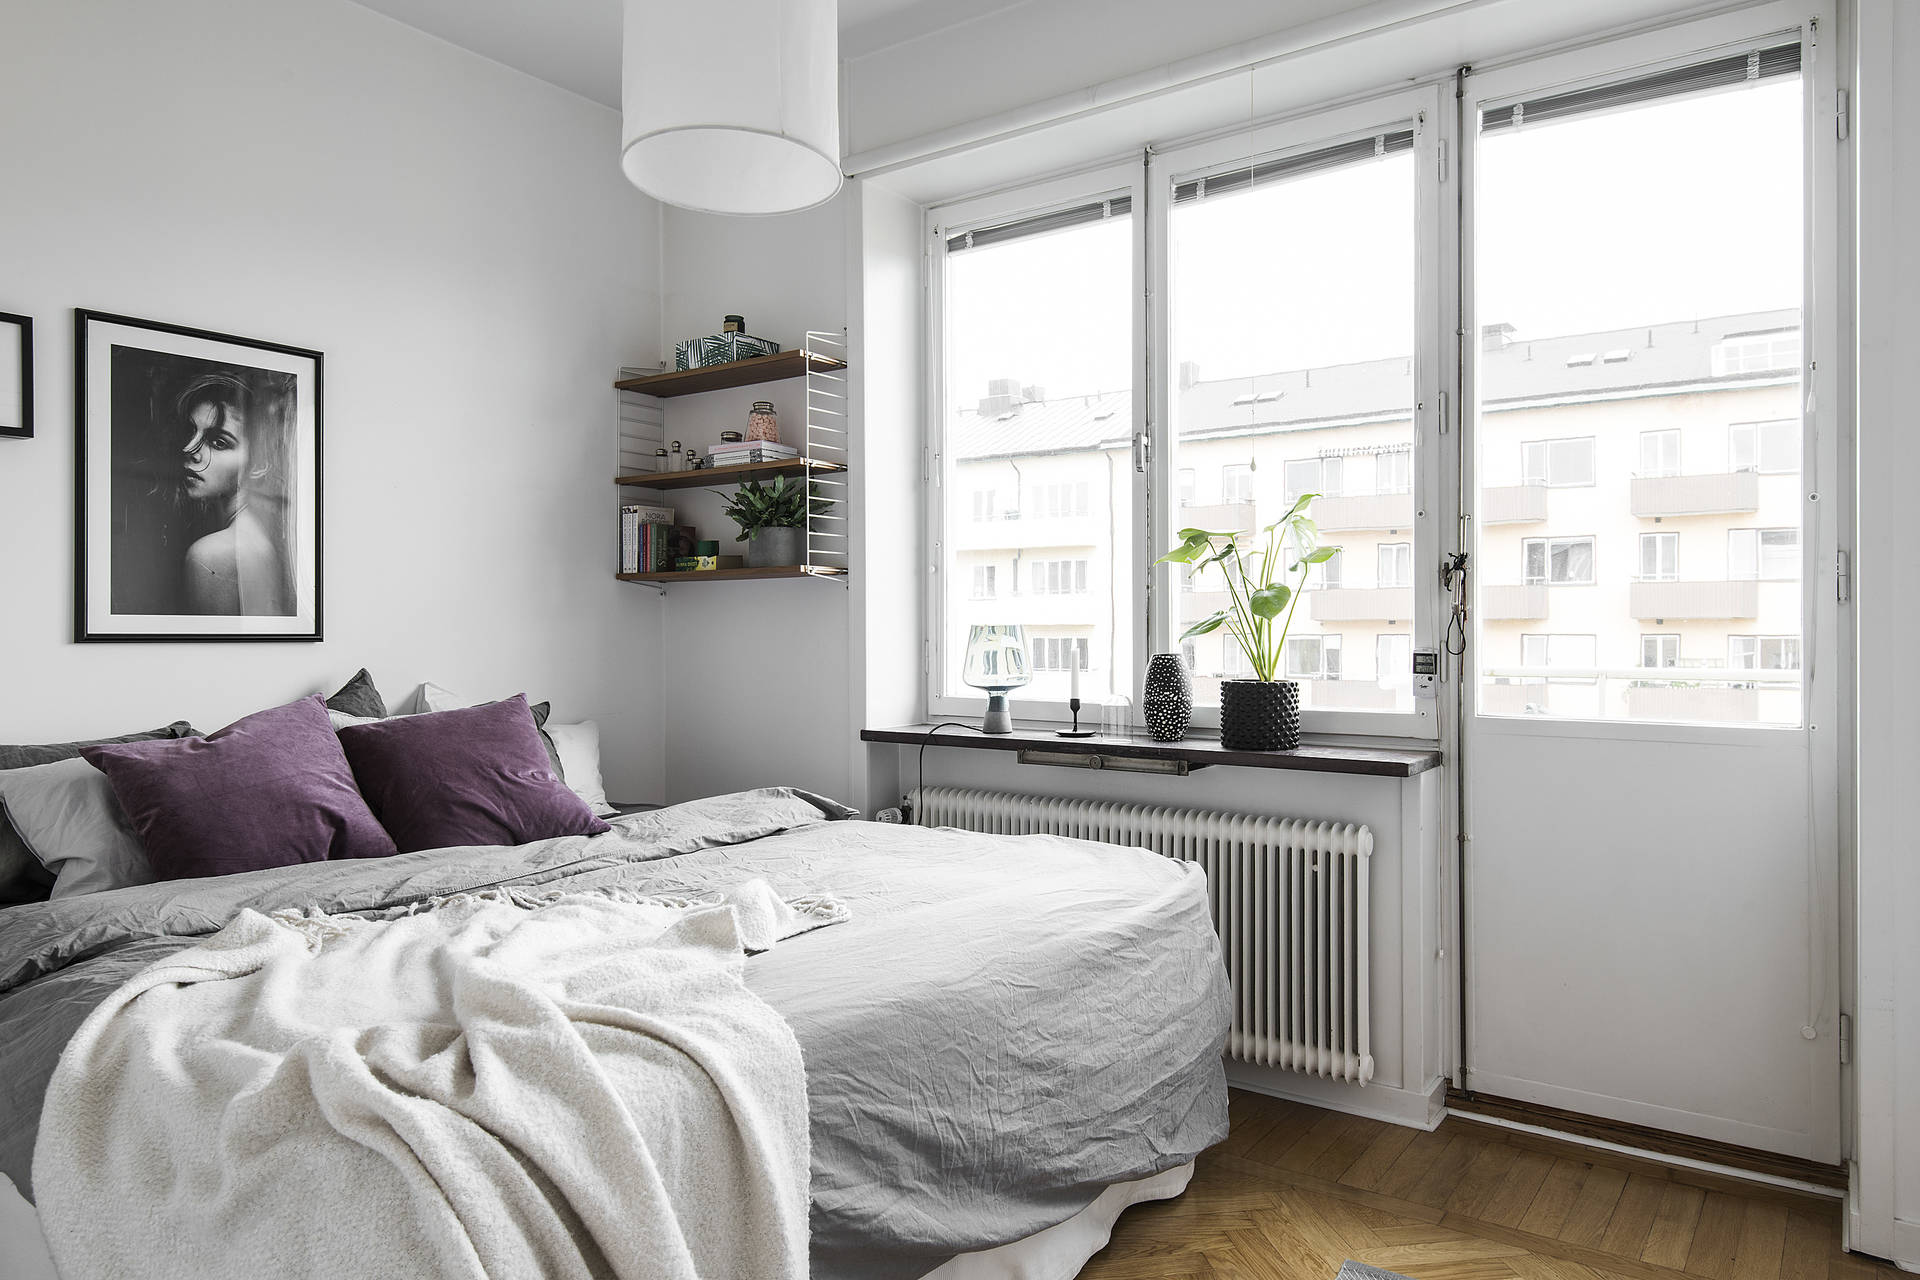 Soft textiles and a touch of purple gives this small master bedroom a very feminine feel.